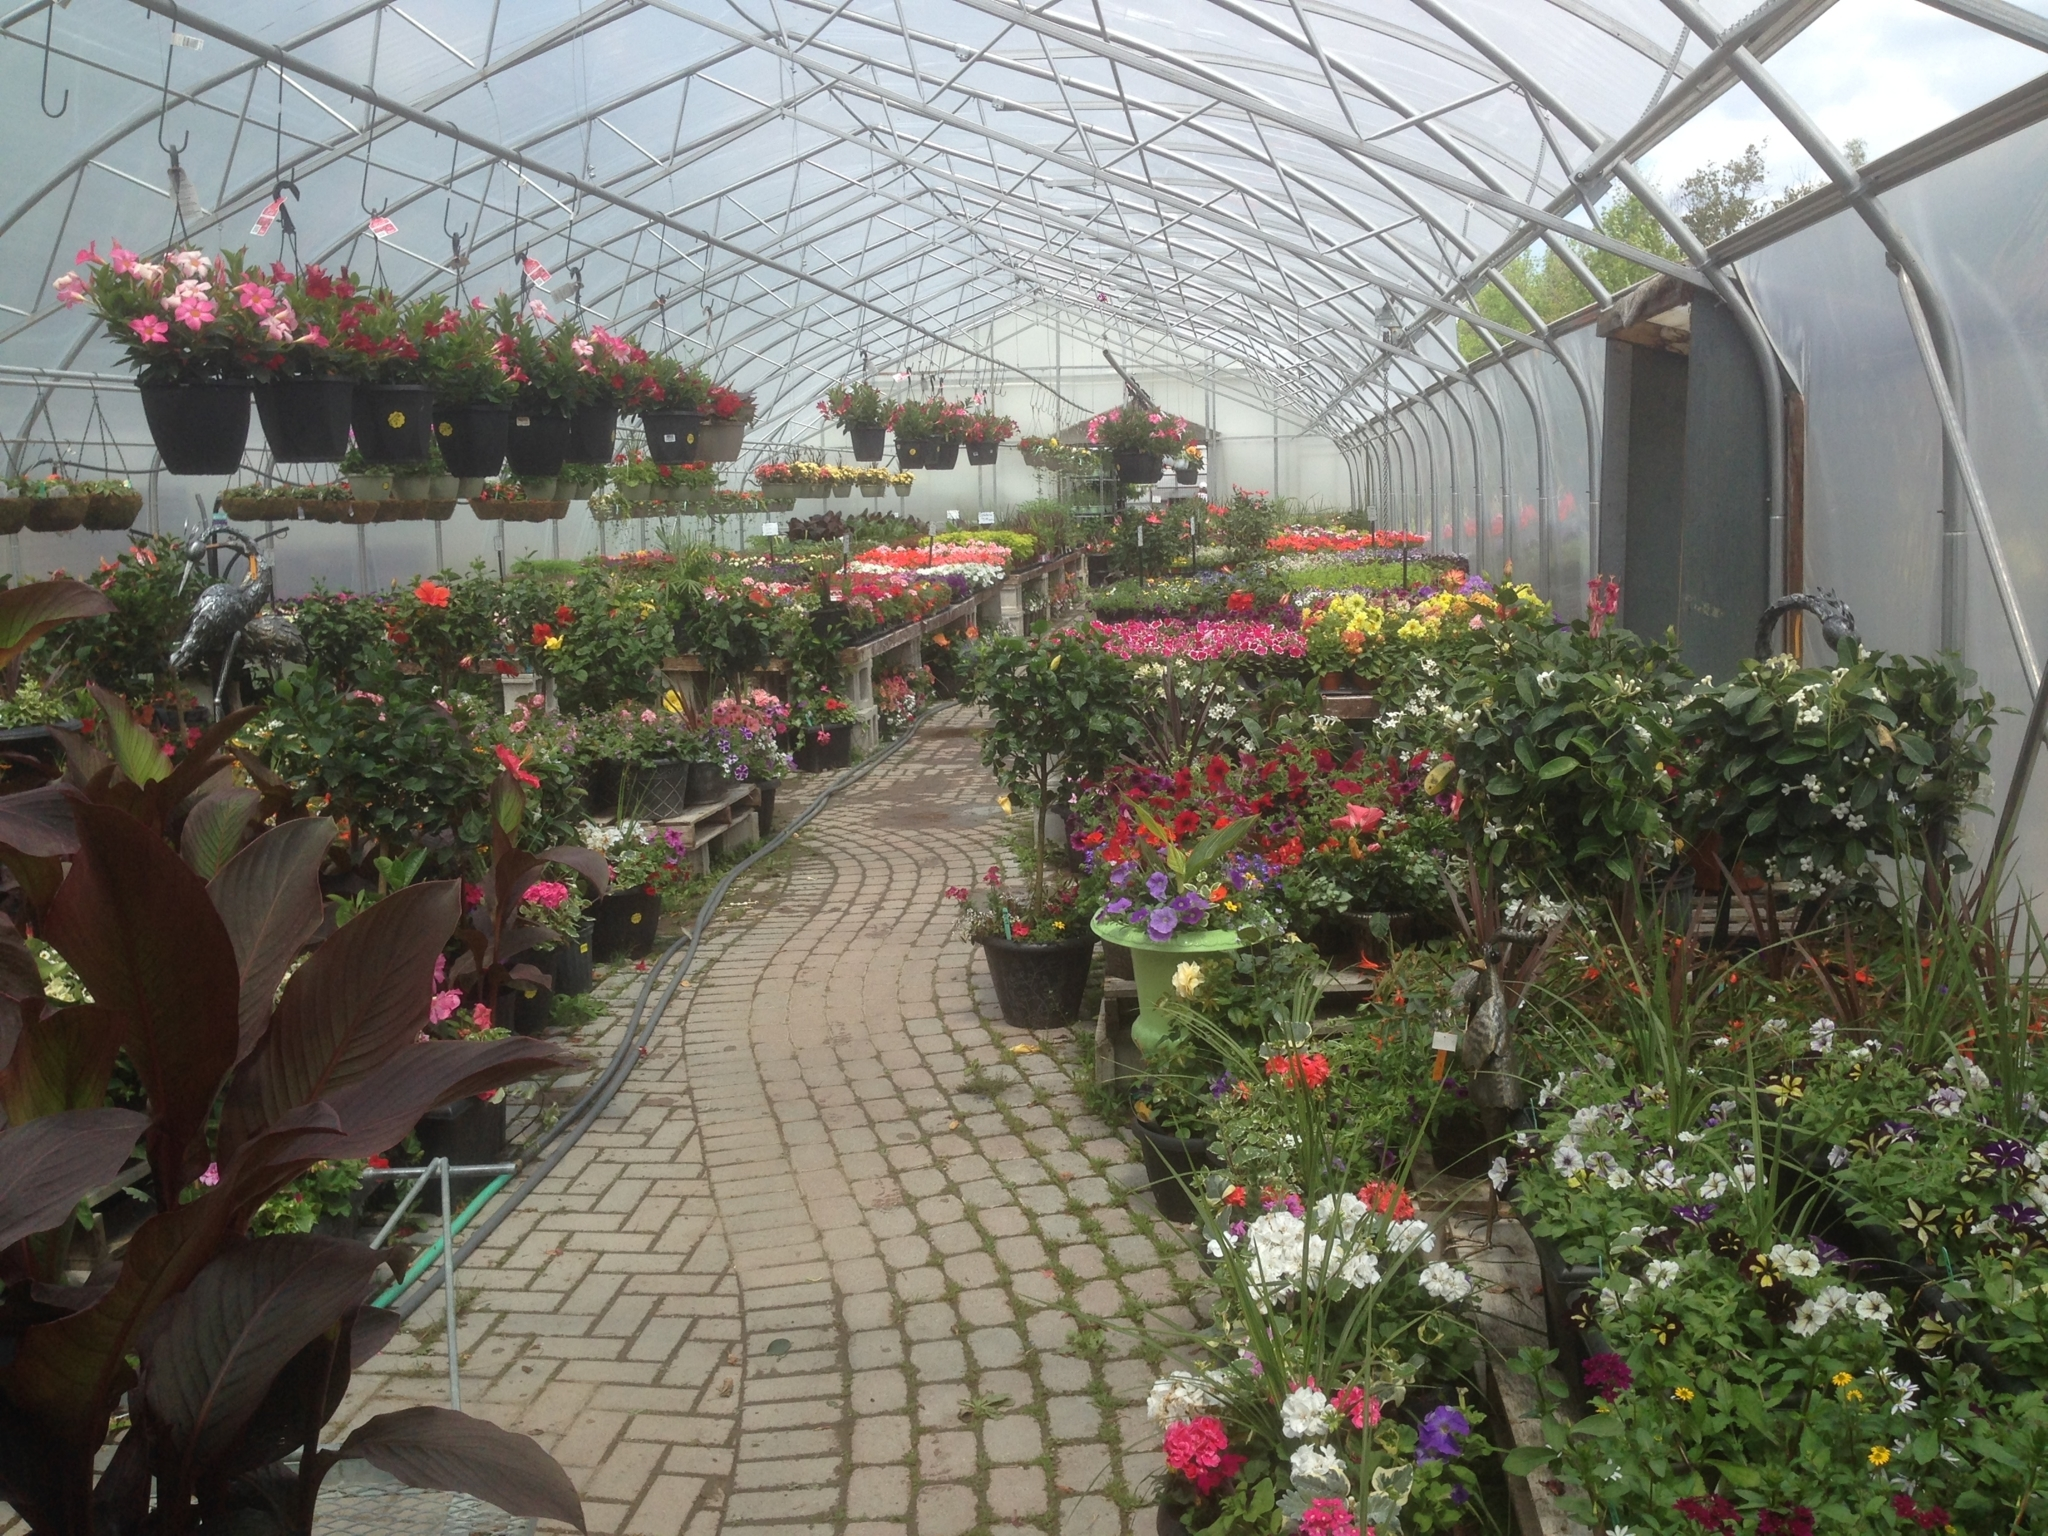 Holland Valley Nursery in Holland Landing: Garden Nursery